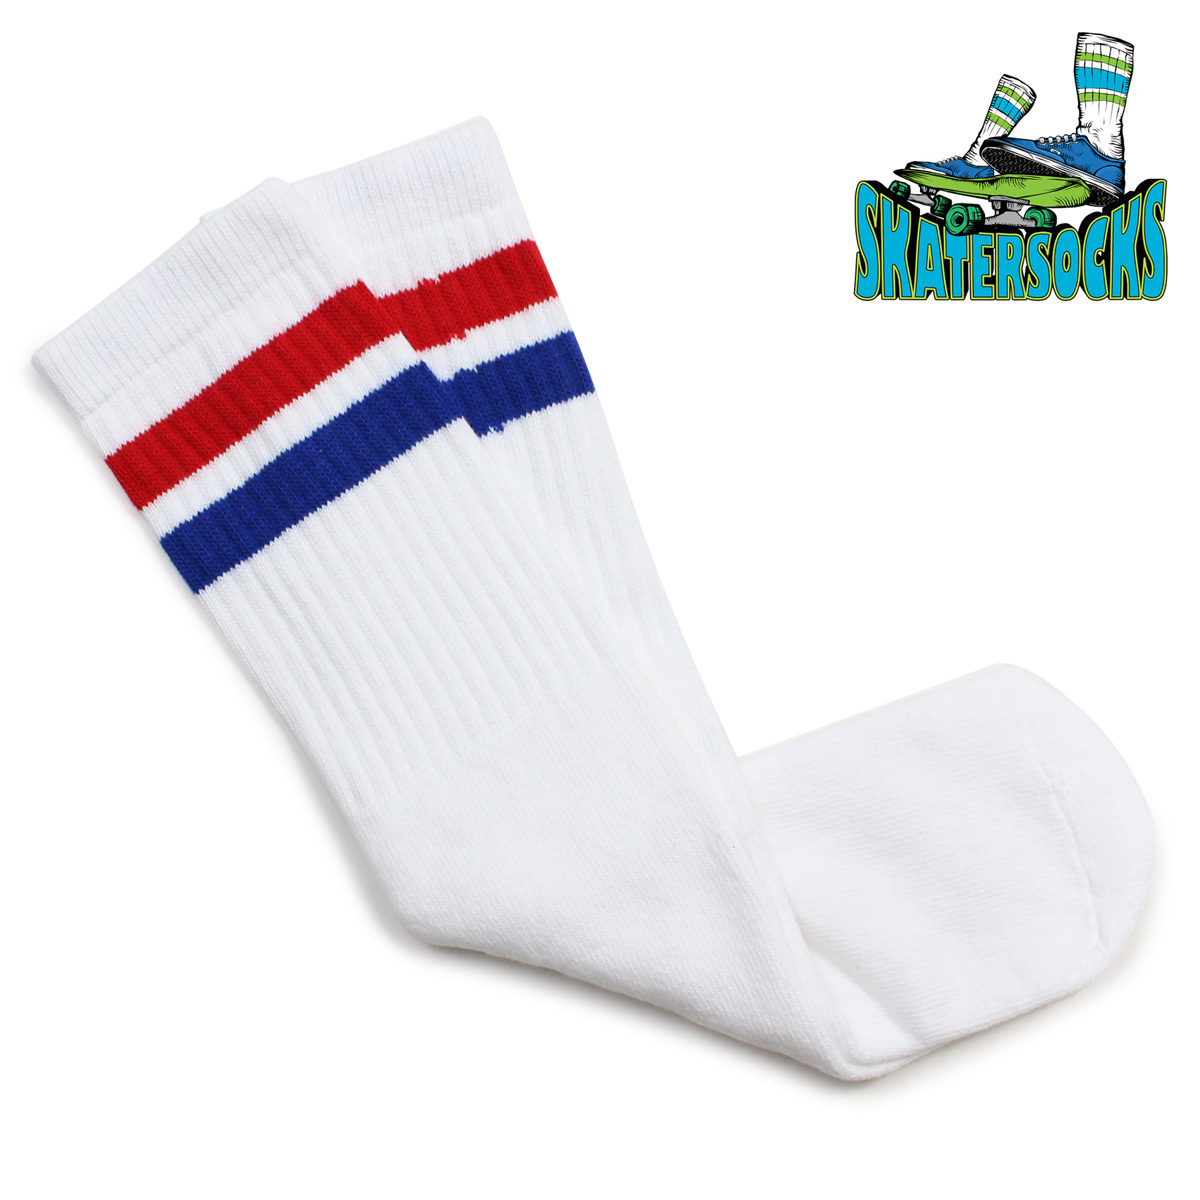 2c12e2b2d47 ... of the 60s and continue making only tube socks of the original stripe.  The brand which is a hardliner continuing with production of the United  States.